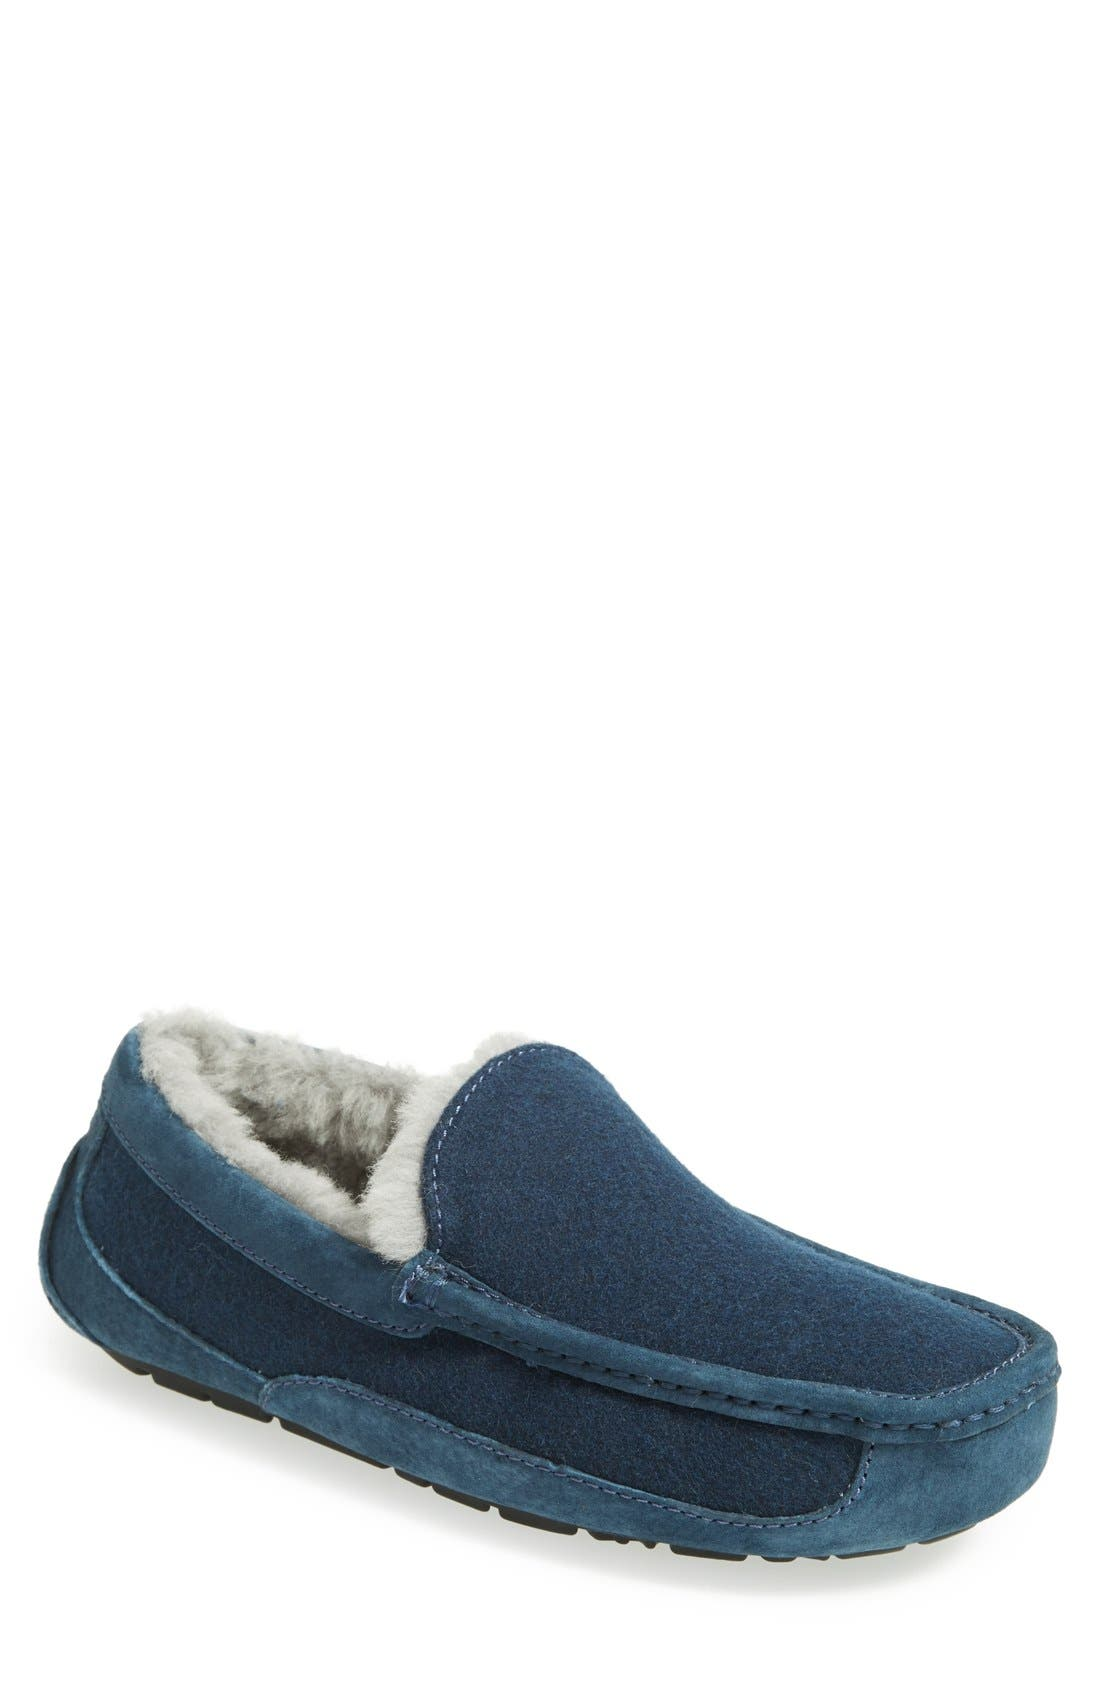 Alternate Image 1 Selected - UGG® Australia 'Ascot' Wool Slipper